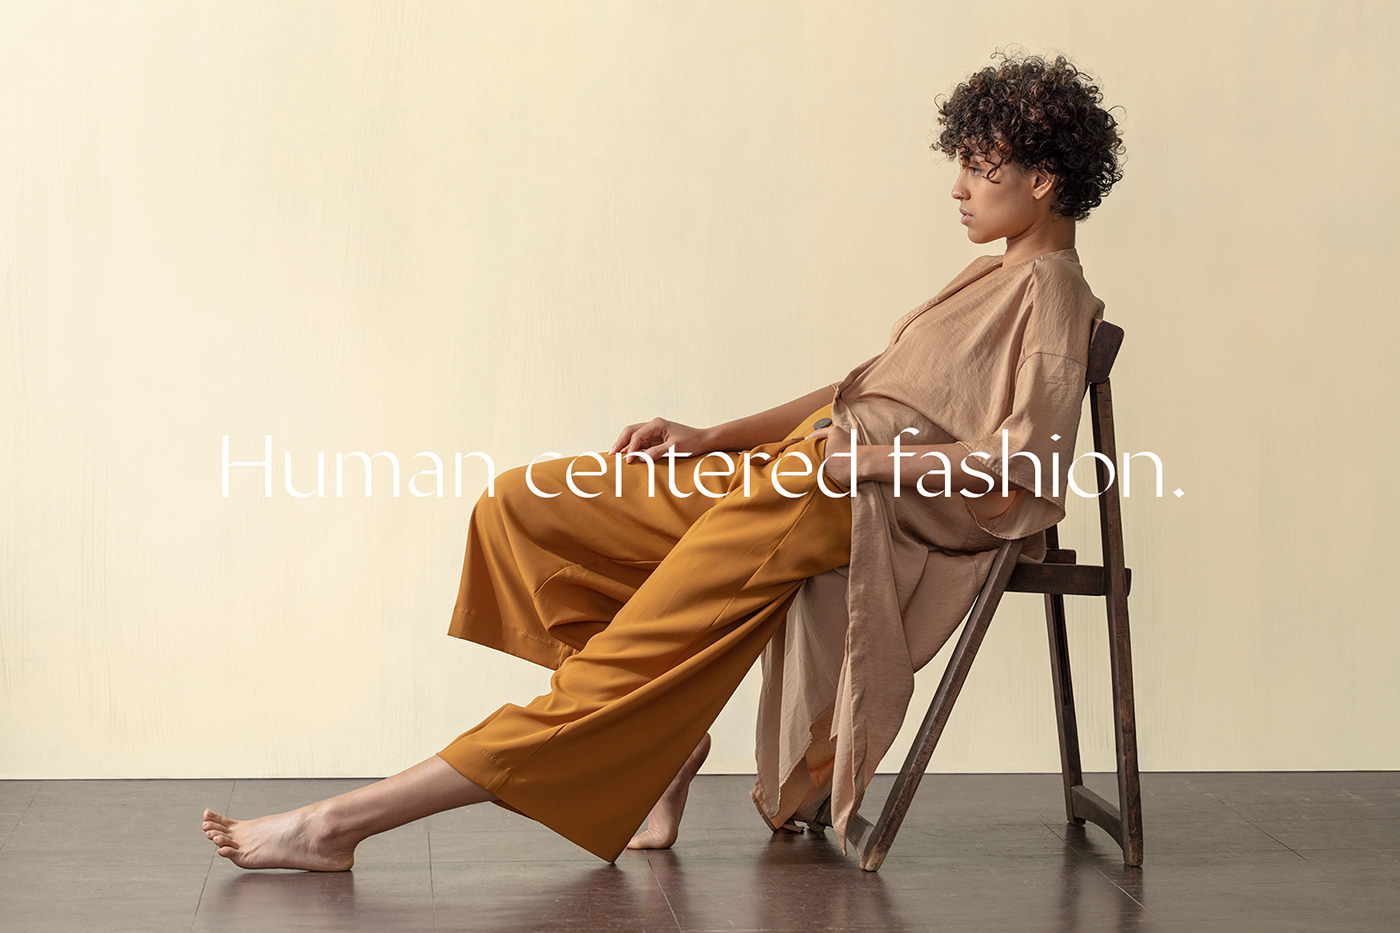 Fashion  branding  senegal woman africa editorial styling  Photography  graphic design  fashion brand